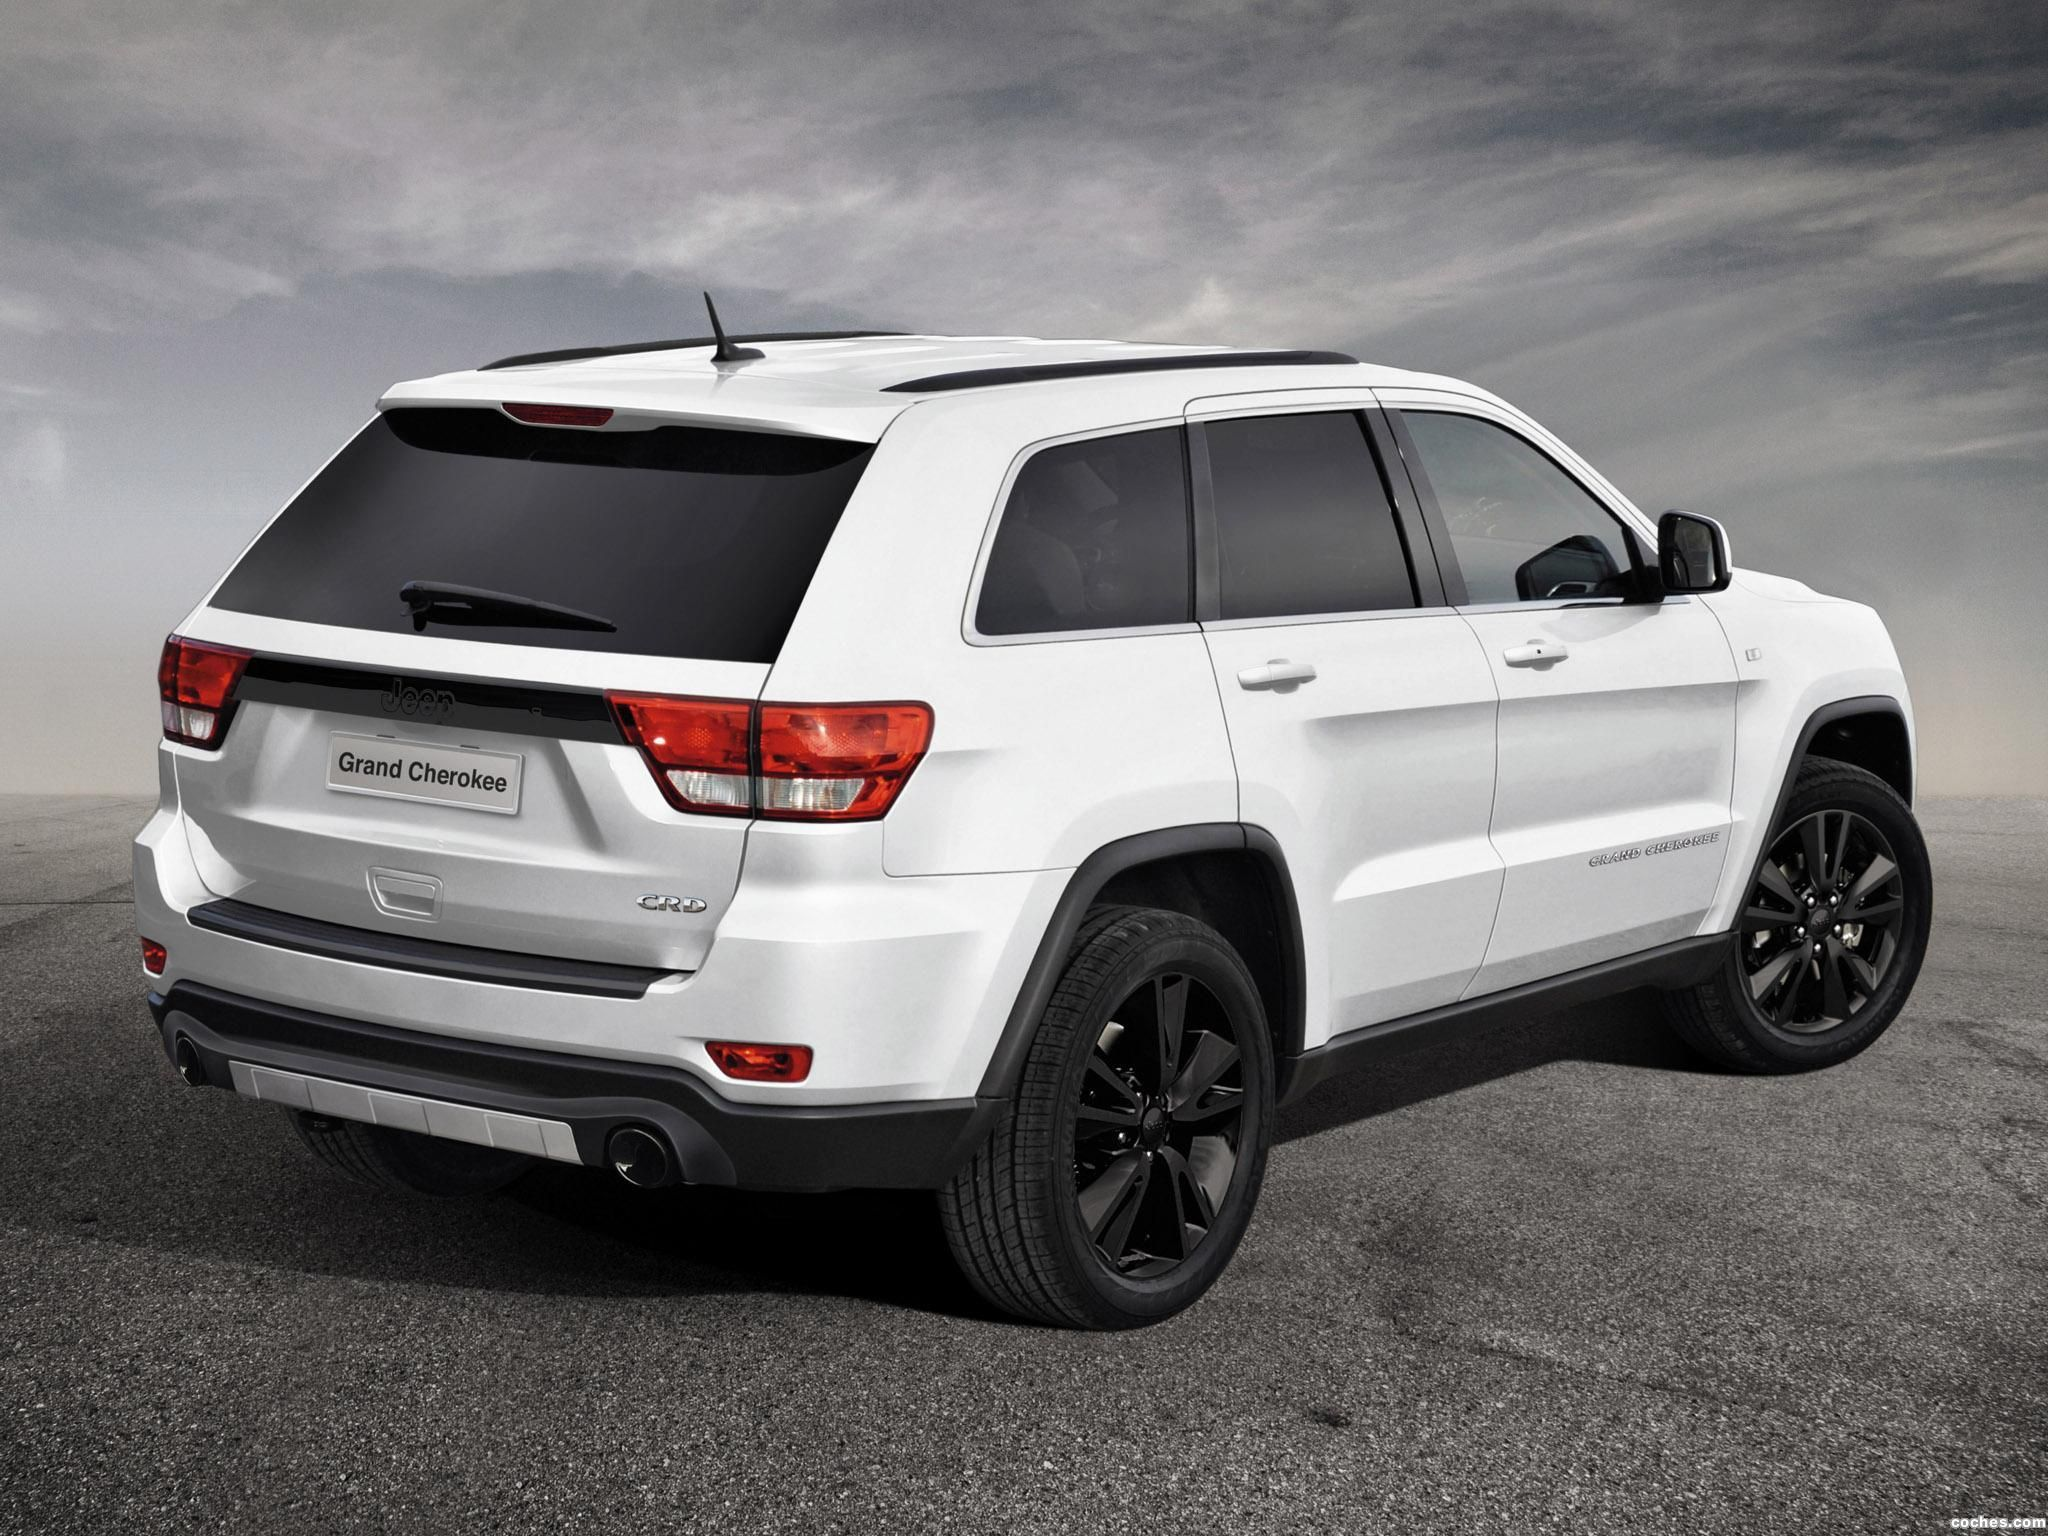 Jeep grand cherokee s limited 1920 x 1200 wallpaper